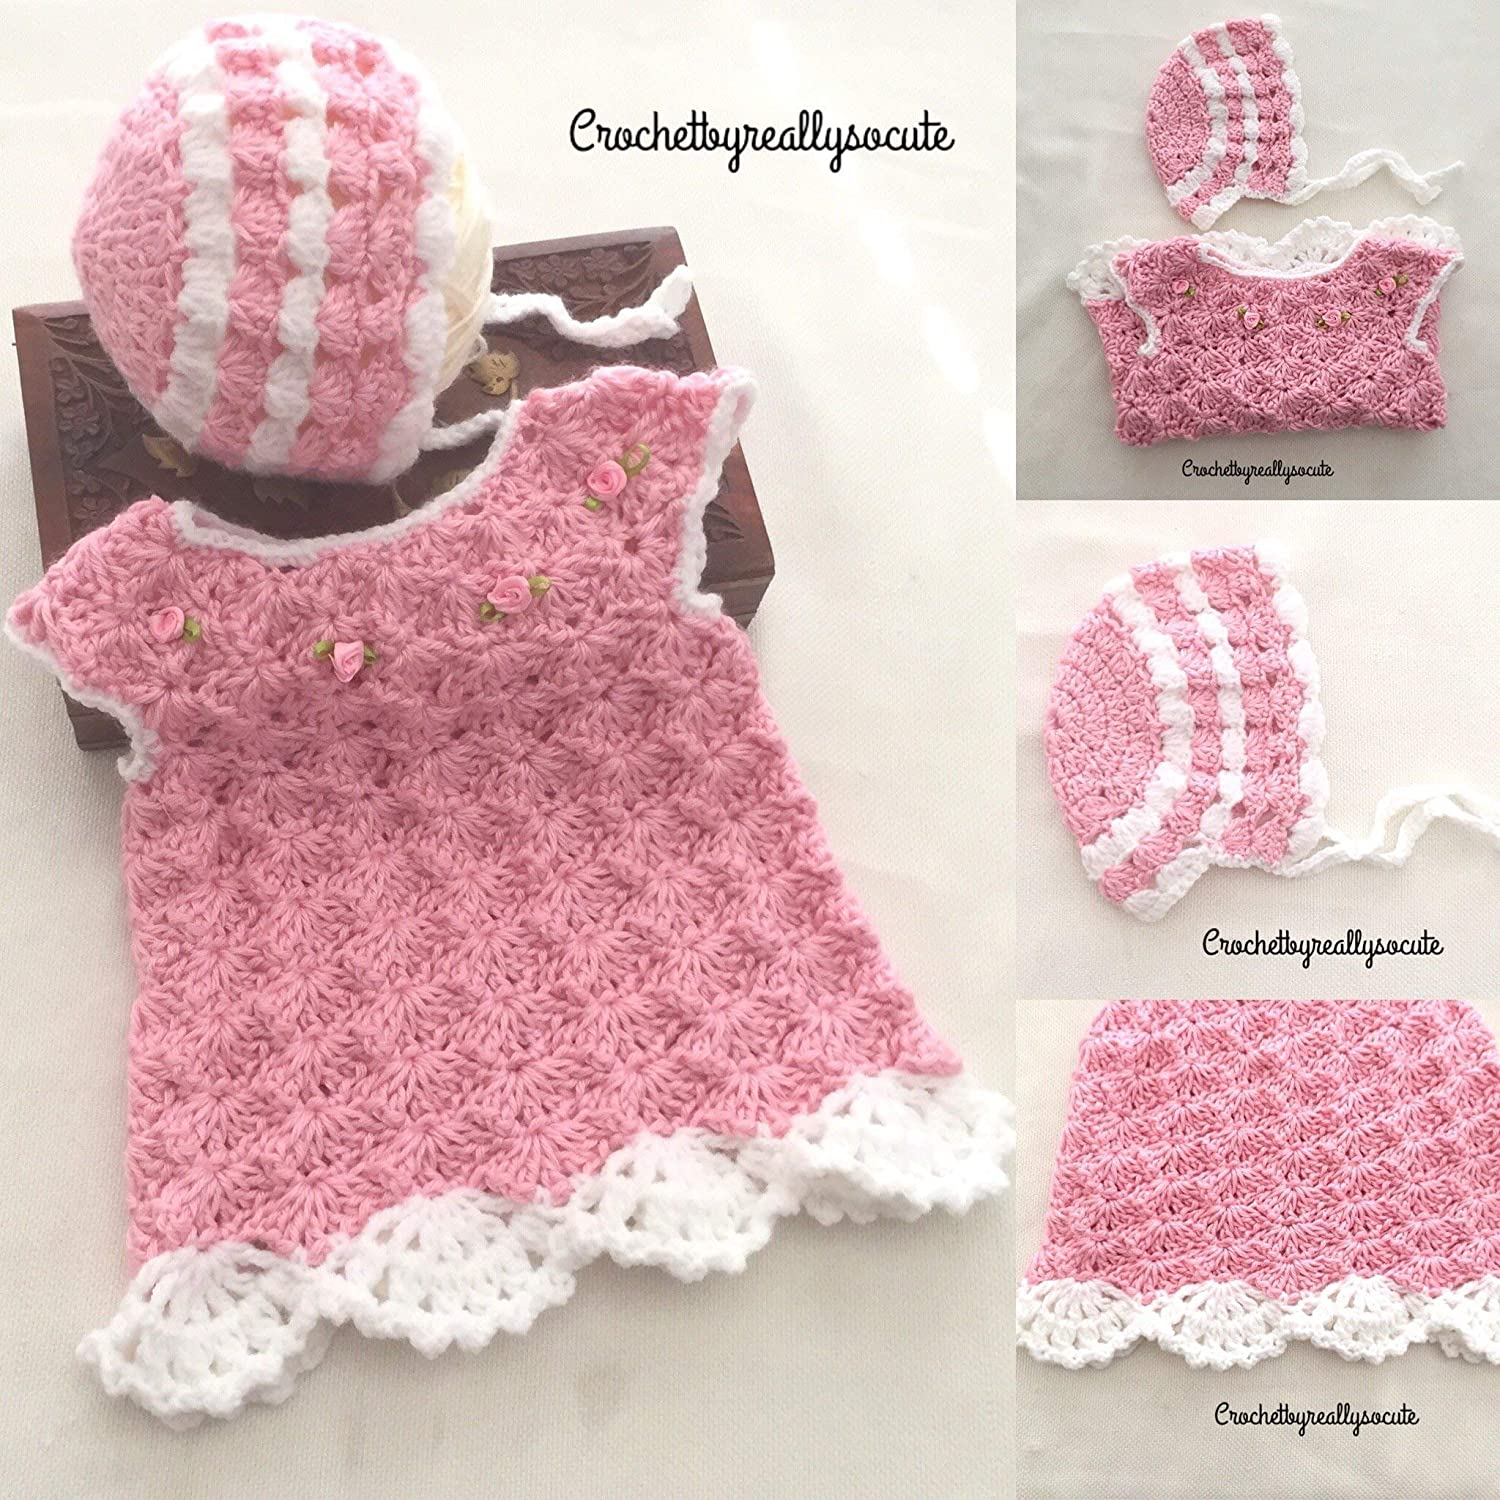 dfb9a91d8 Amazon.com  Easter baby dress